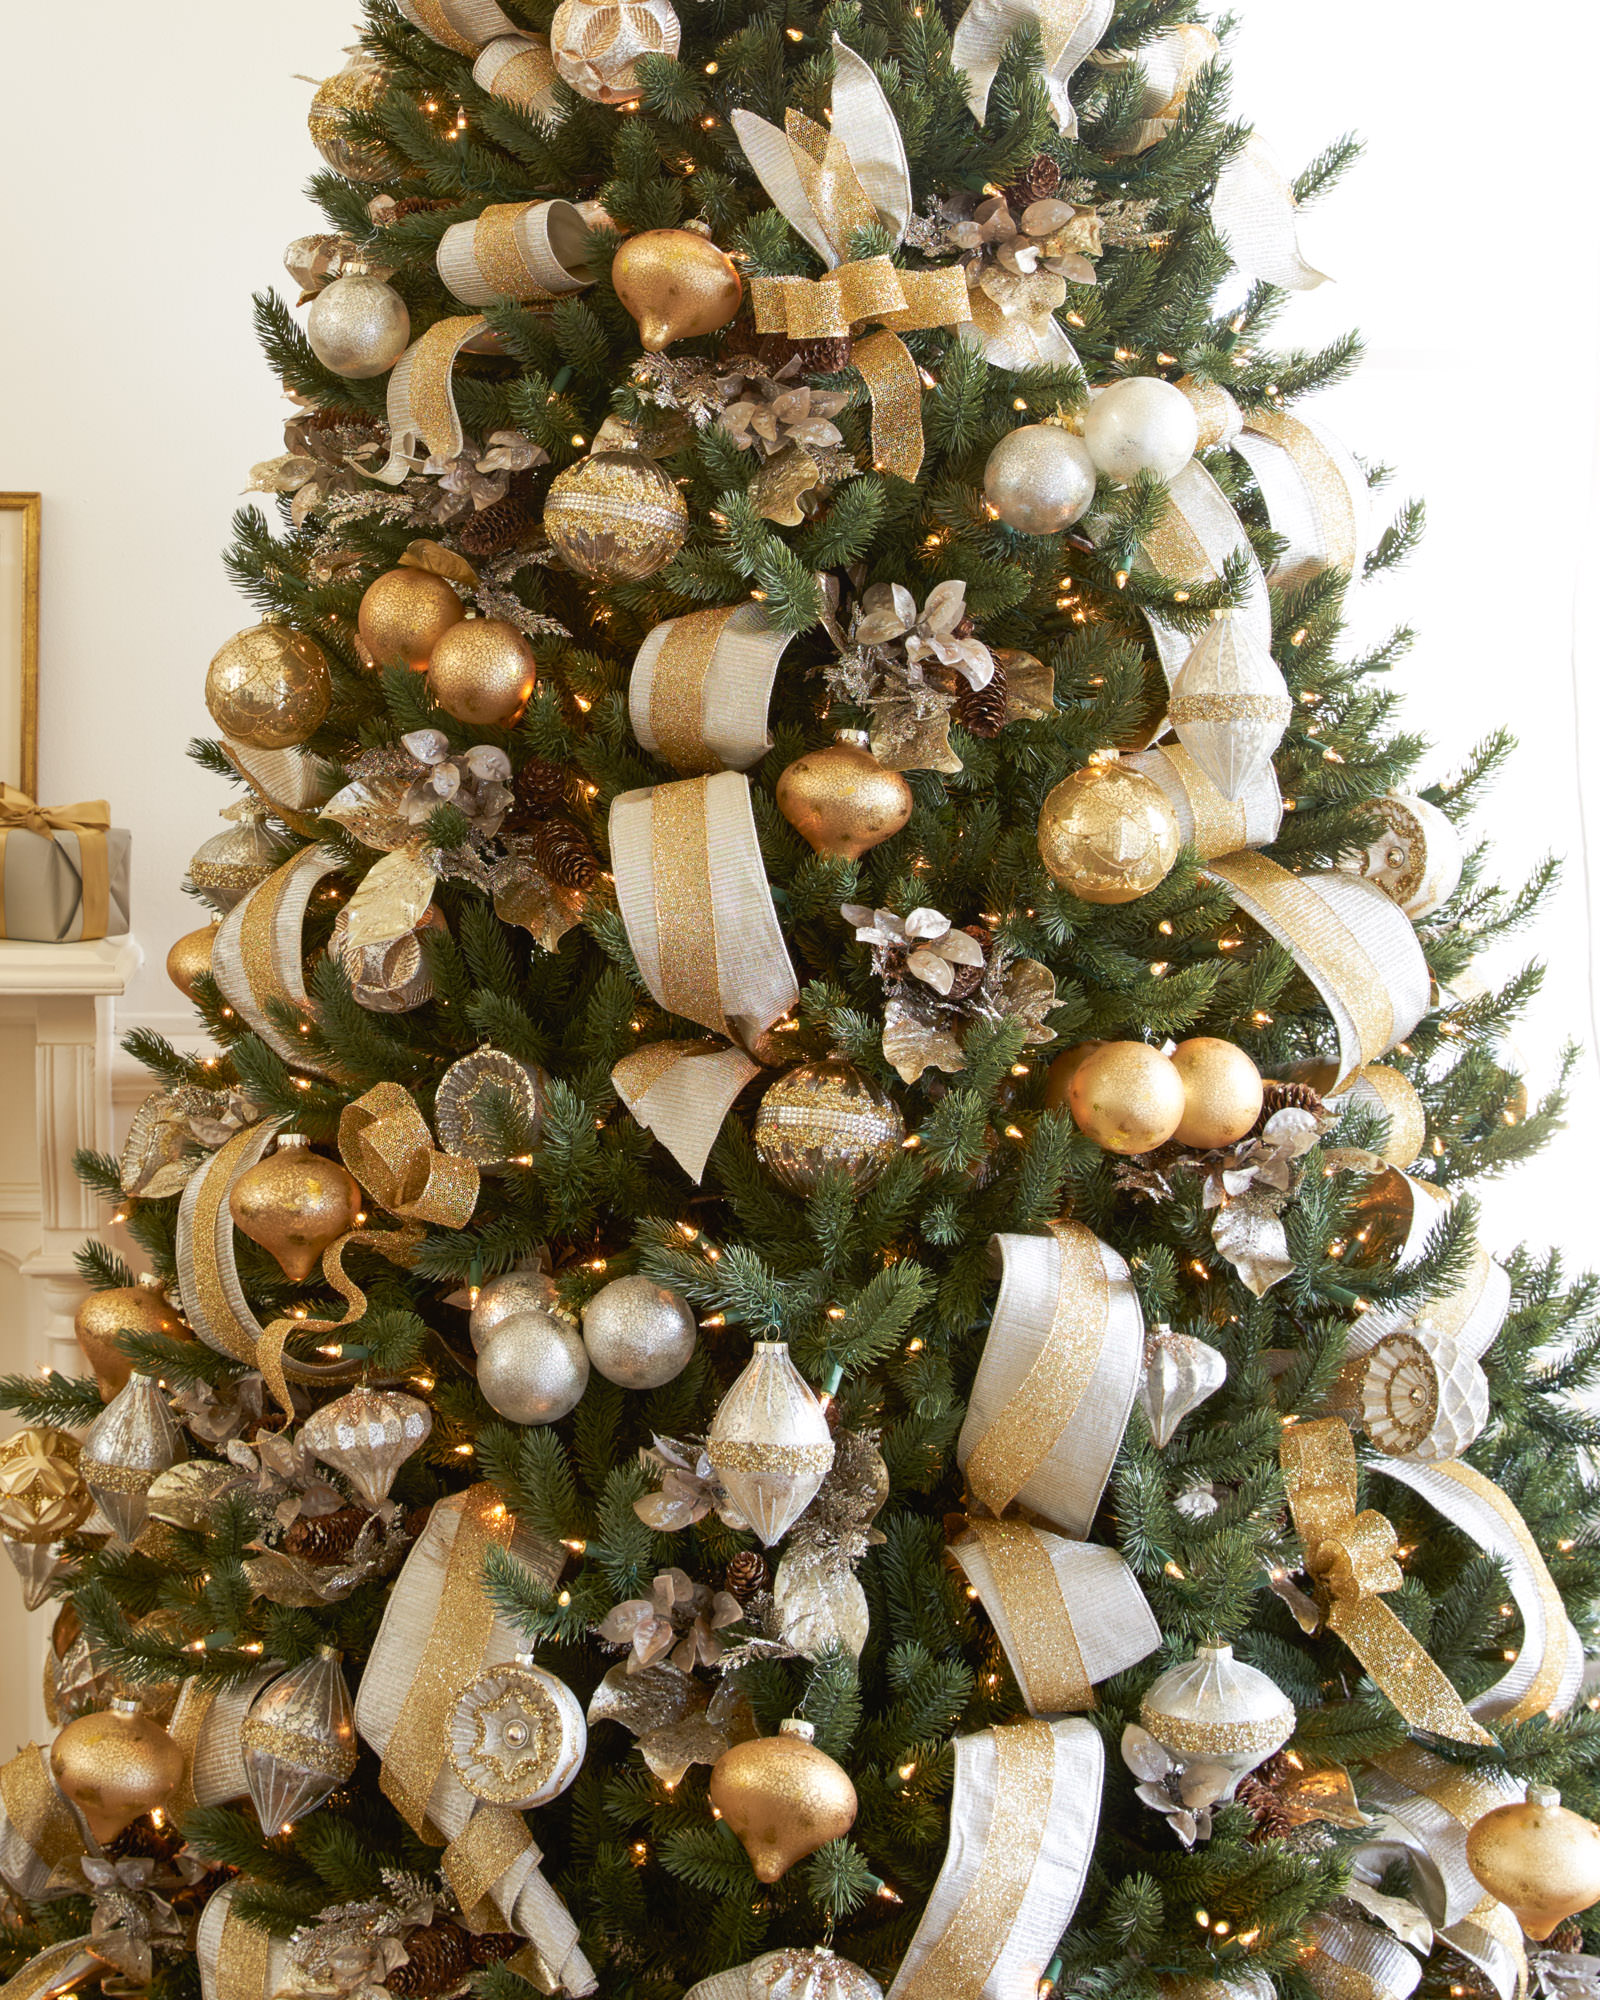 Dainty G Tree Tree Decorating Ideas Silver Tree Walmart Silver Tree Target G Tree G Angel Tree Per Vermont Spruce Silver Silver houzz 01 Silver Christmas Tree